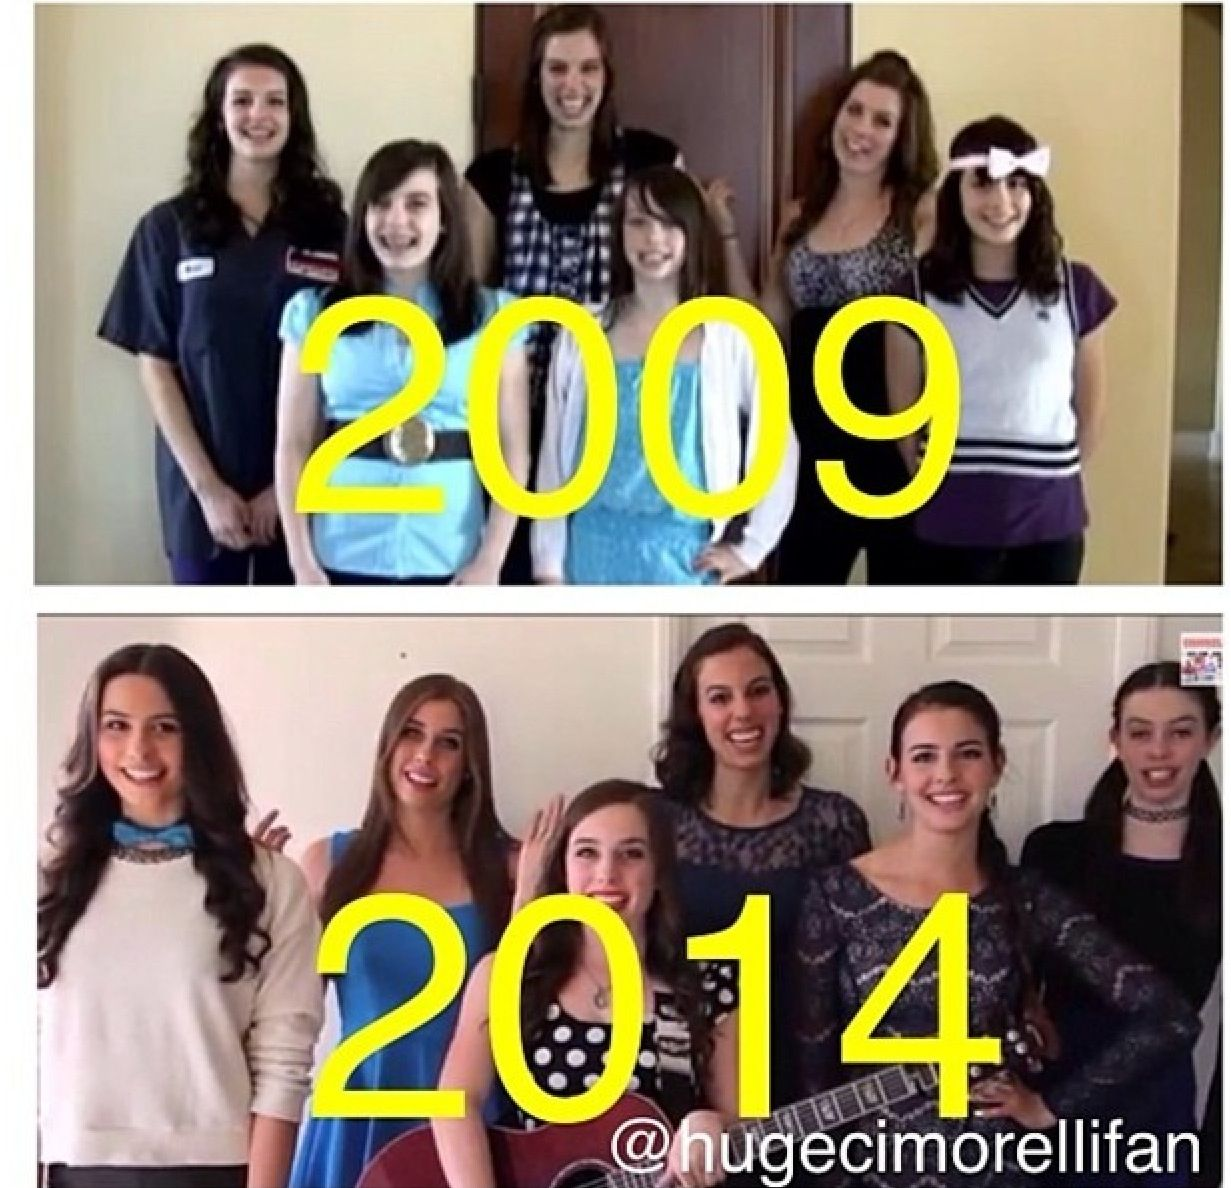 They have grown so much and I am so proud!